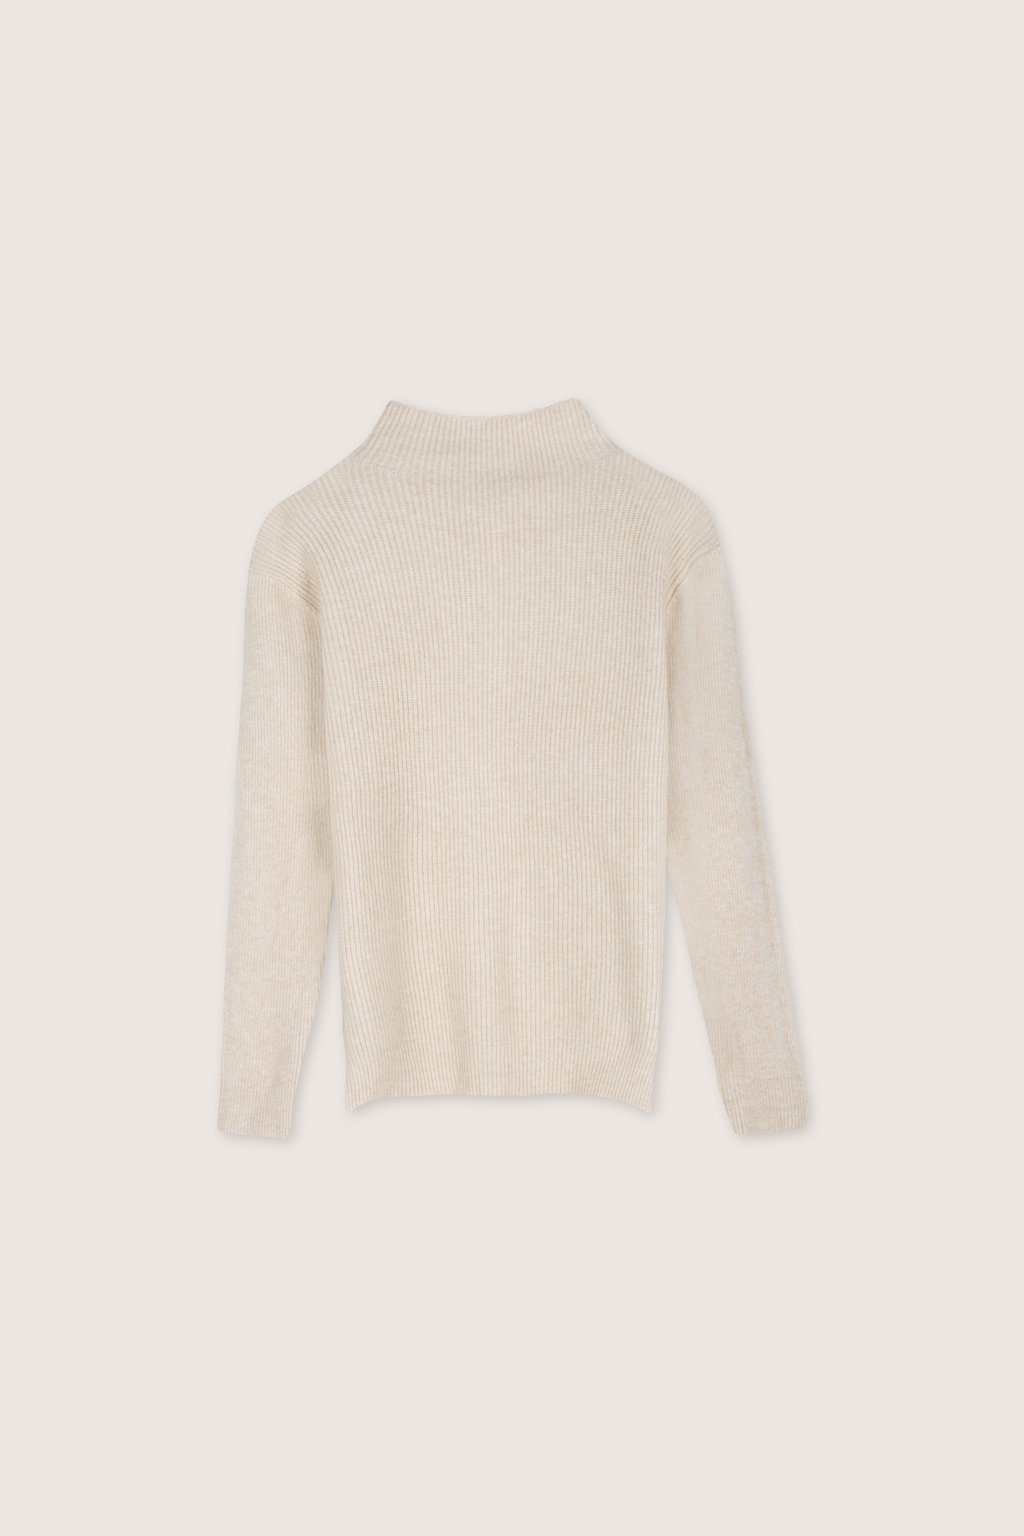 Sweater H031 Beige 5